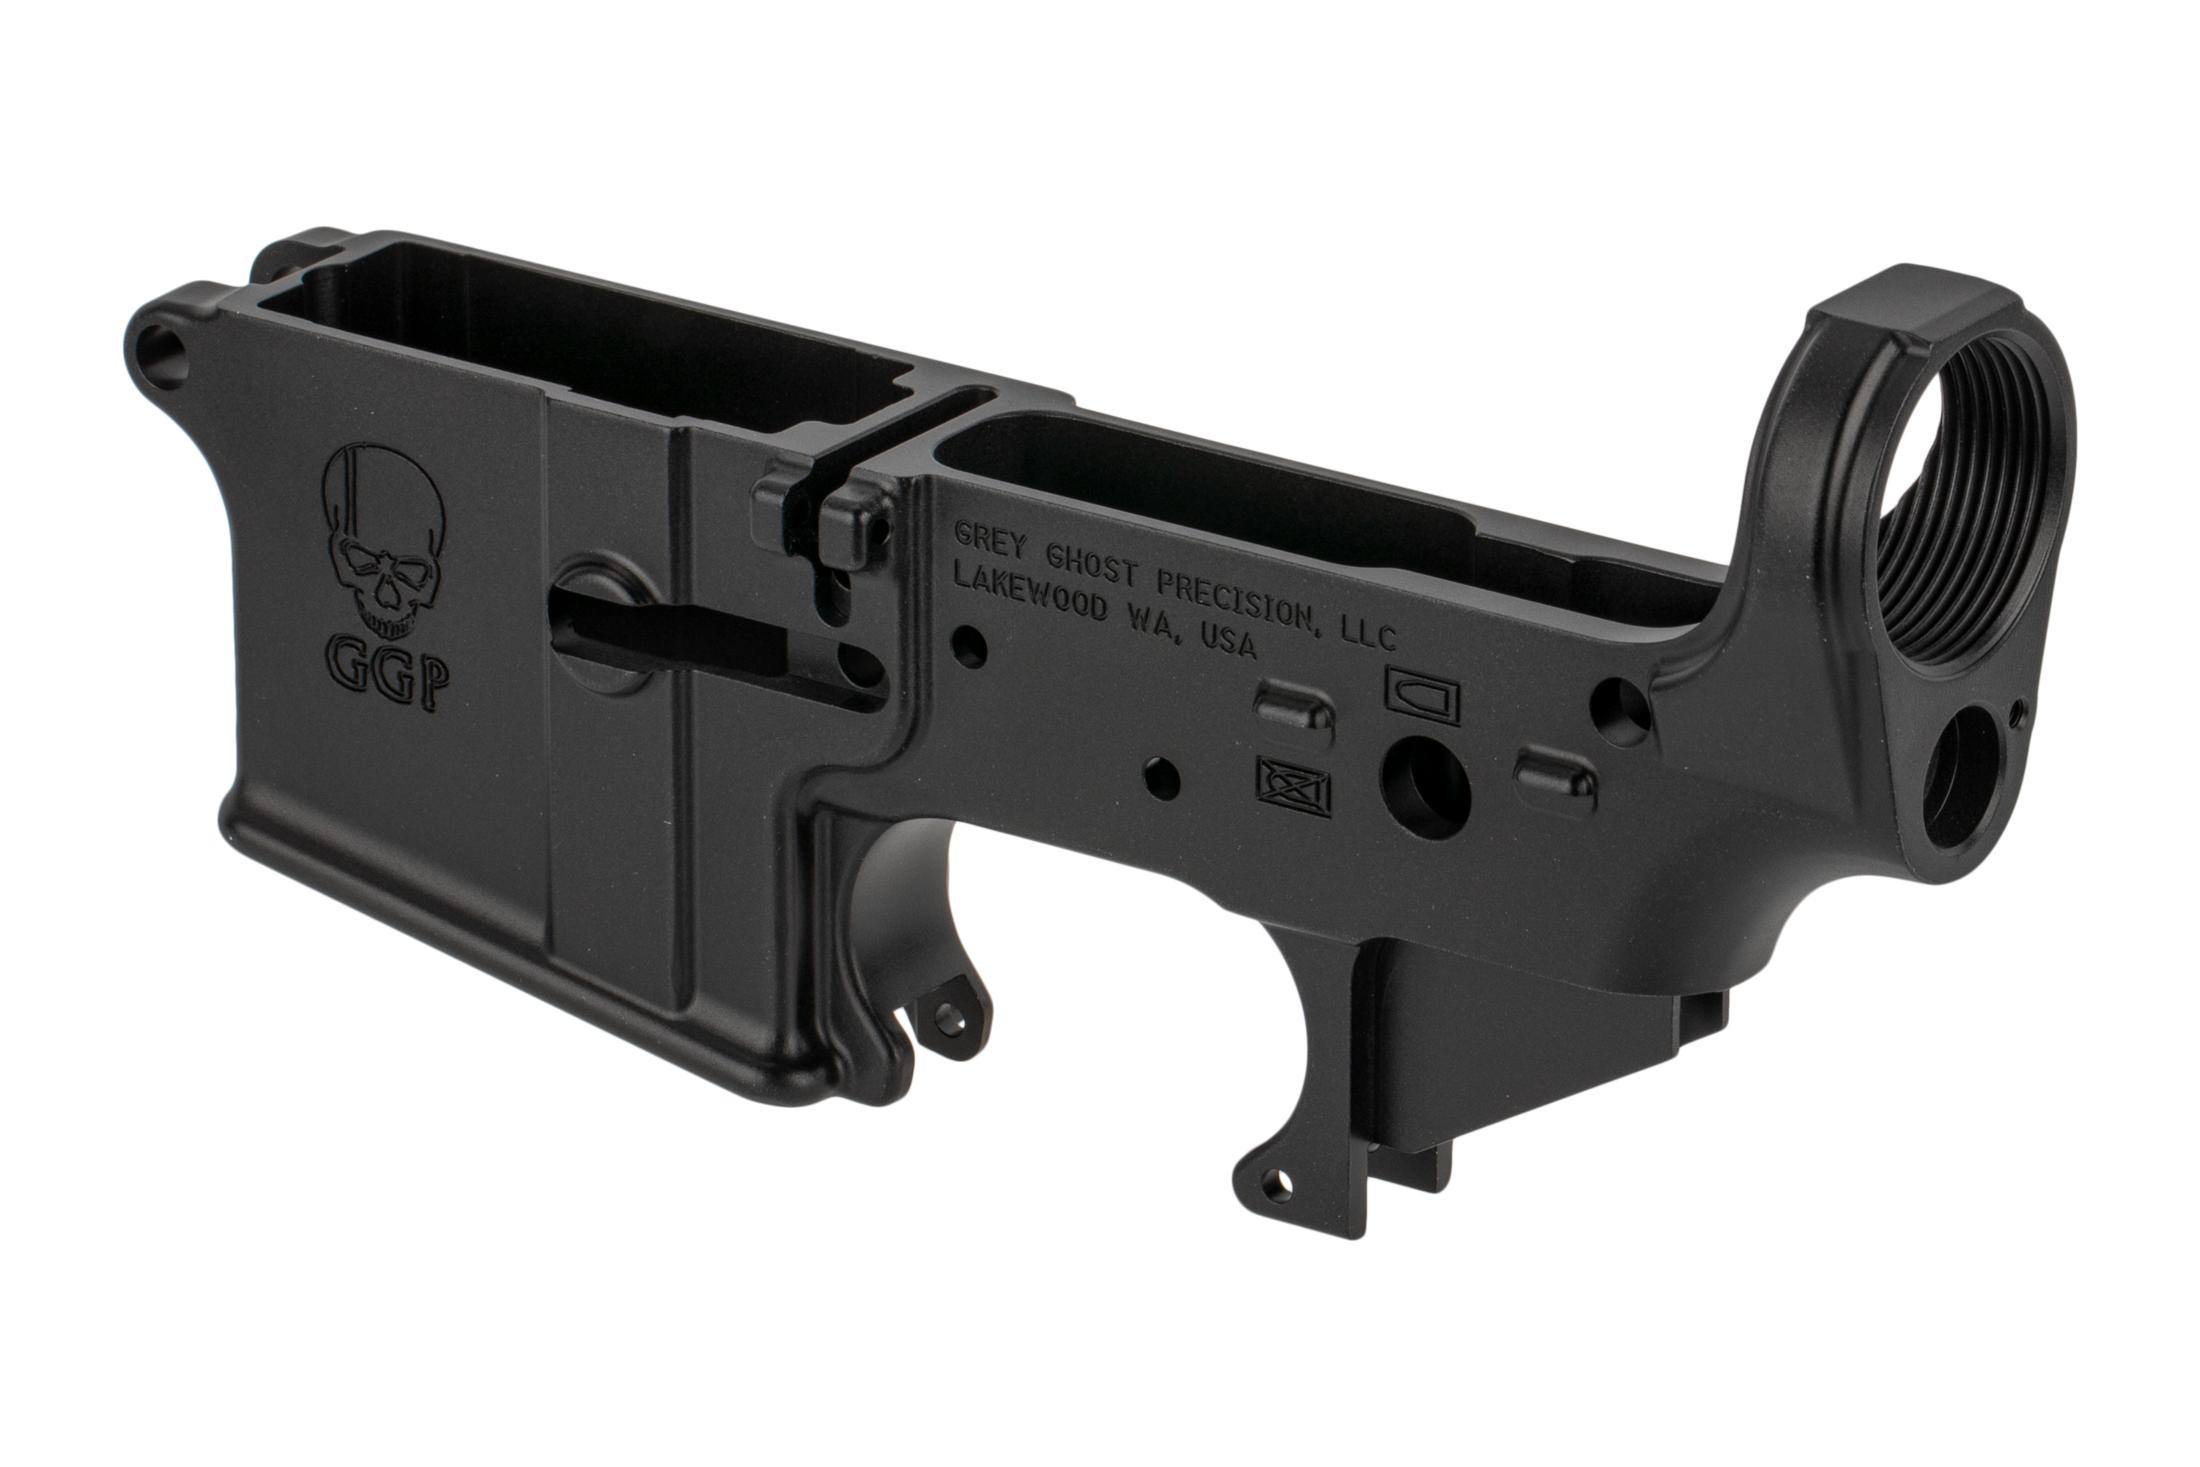 GGP's Cornerstone forged lower receiver is machined from 7075-T6 aluminum with pictogram selector markins.